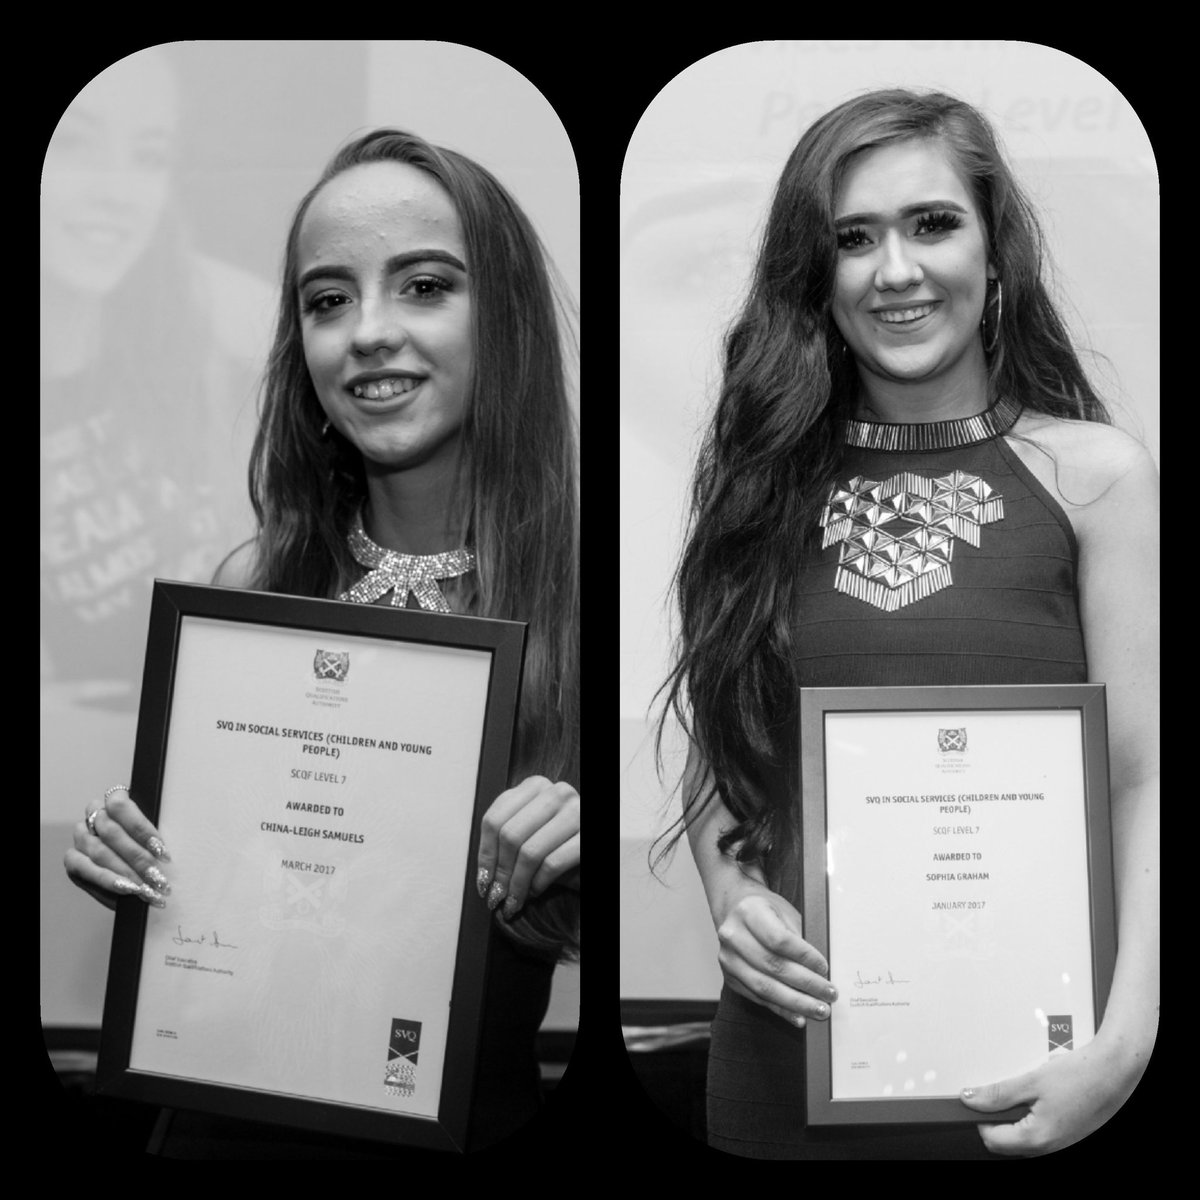 Our inspiring ladies @ChinaLeighS @soph961 at their recent graduation ceremony held by @TIGERS_UK #quality #achievinggoals #earlyyears<br>http://pic.twitter.com/k2h3ydVkbg